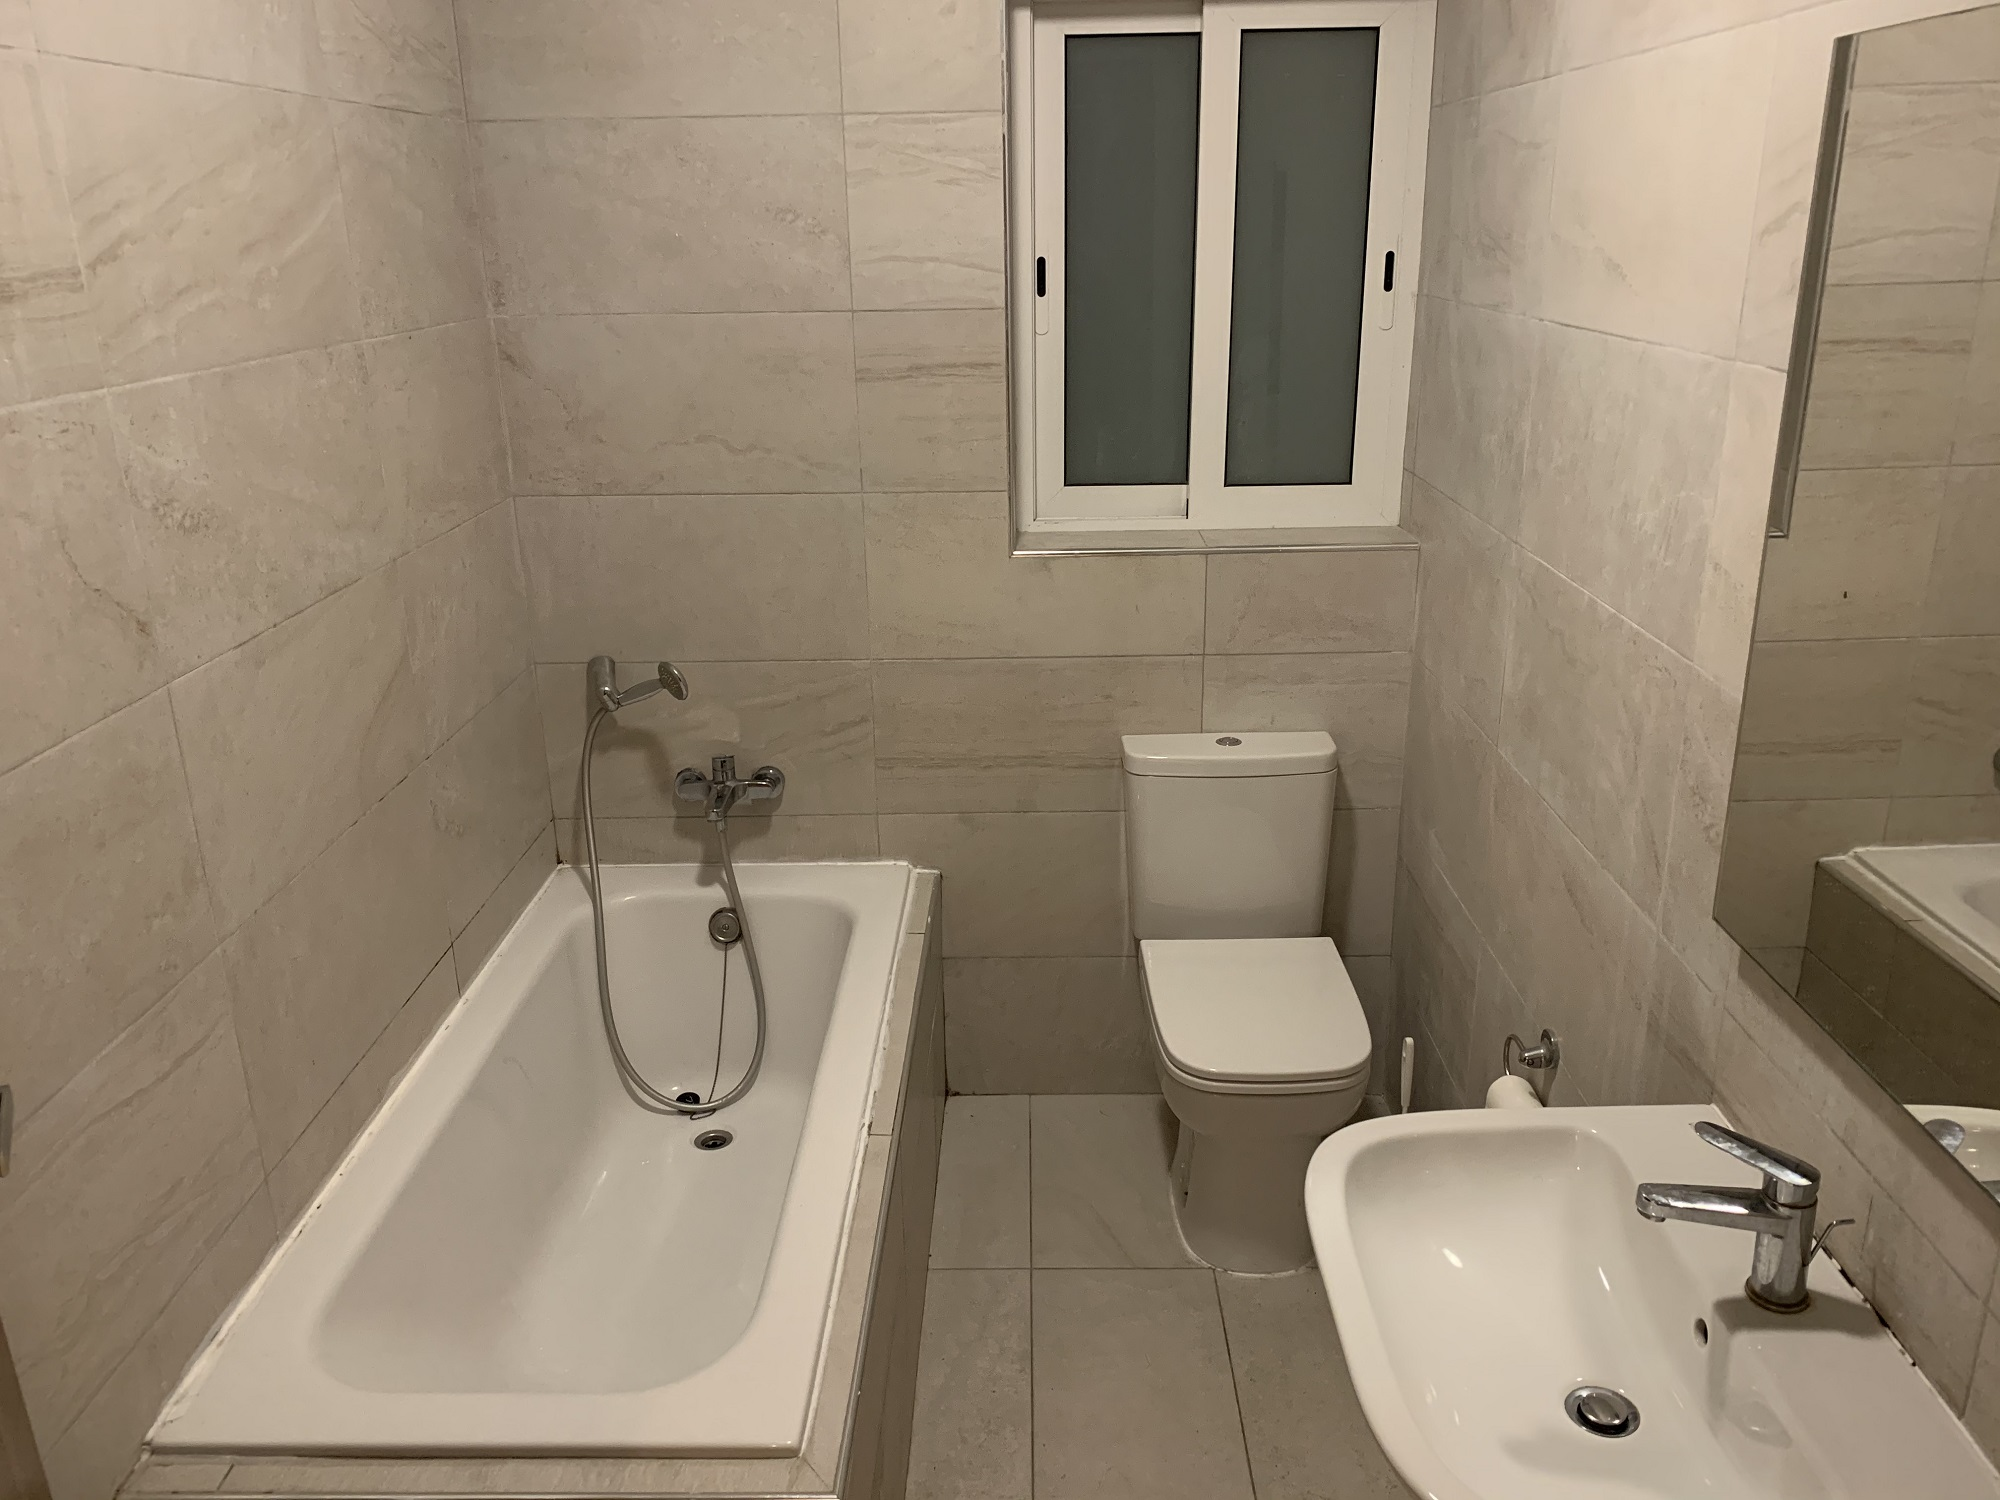 Bathroom with tub at the BELS Residence